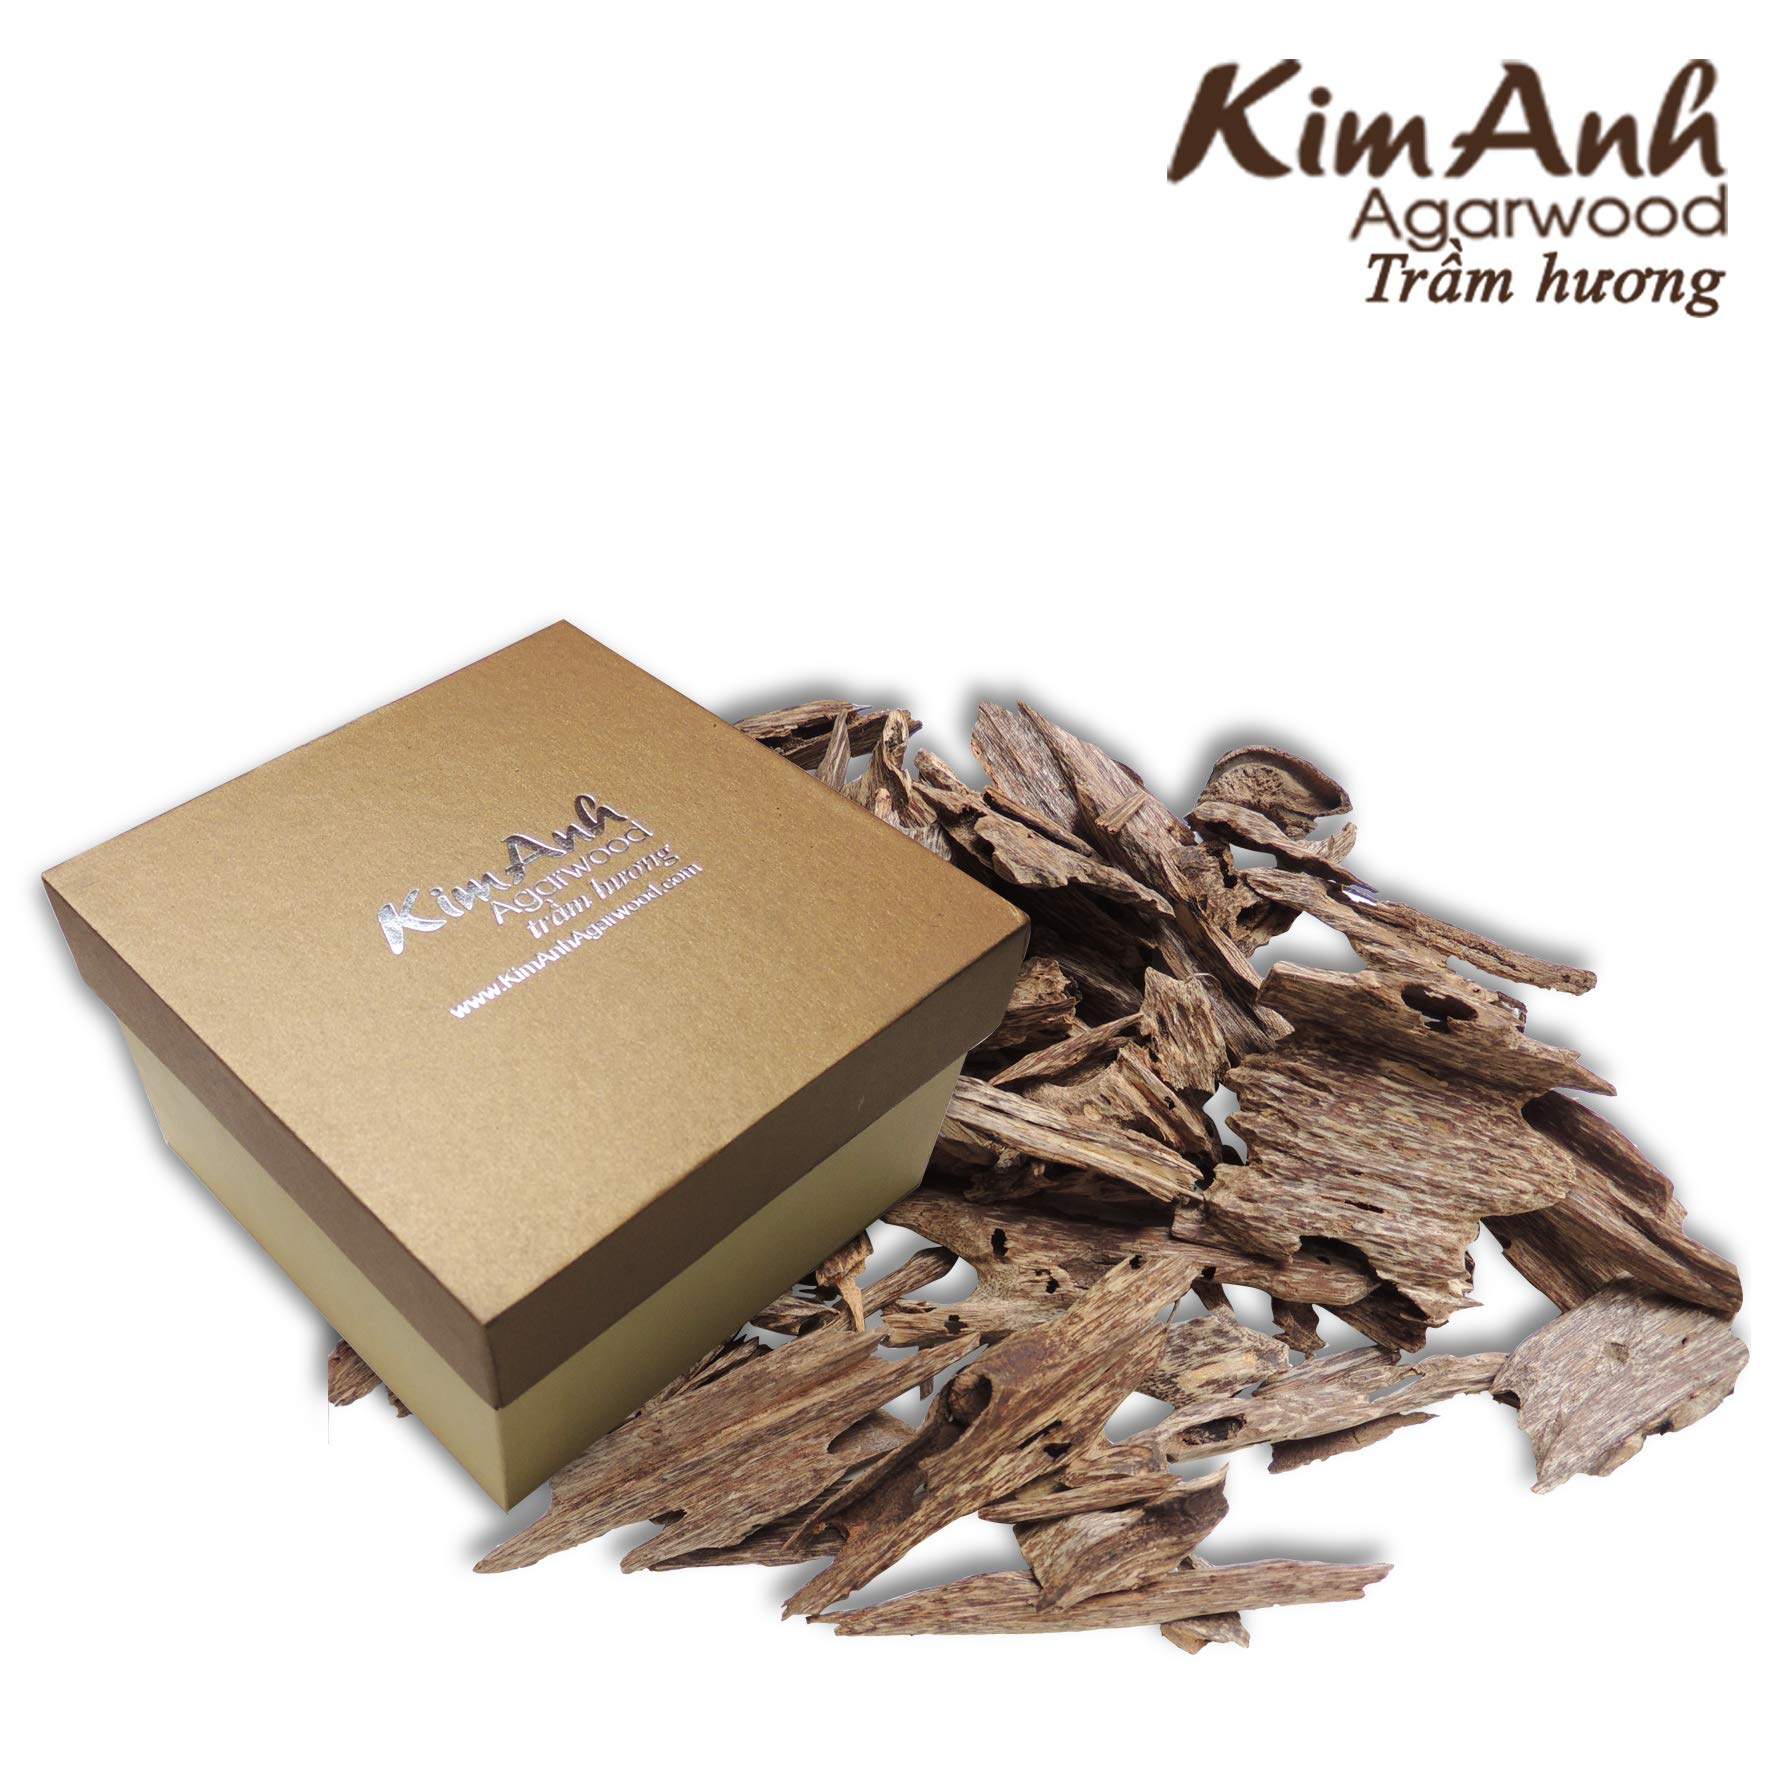 Kim Anh Agarwood chips - Vietnam natural agarwood chips - Pure high quality Agarwood Aloeswood chips - Oud wood chips - Oudh chips for - charcoal or electric incense burner- 30g